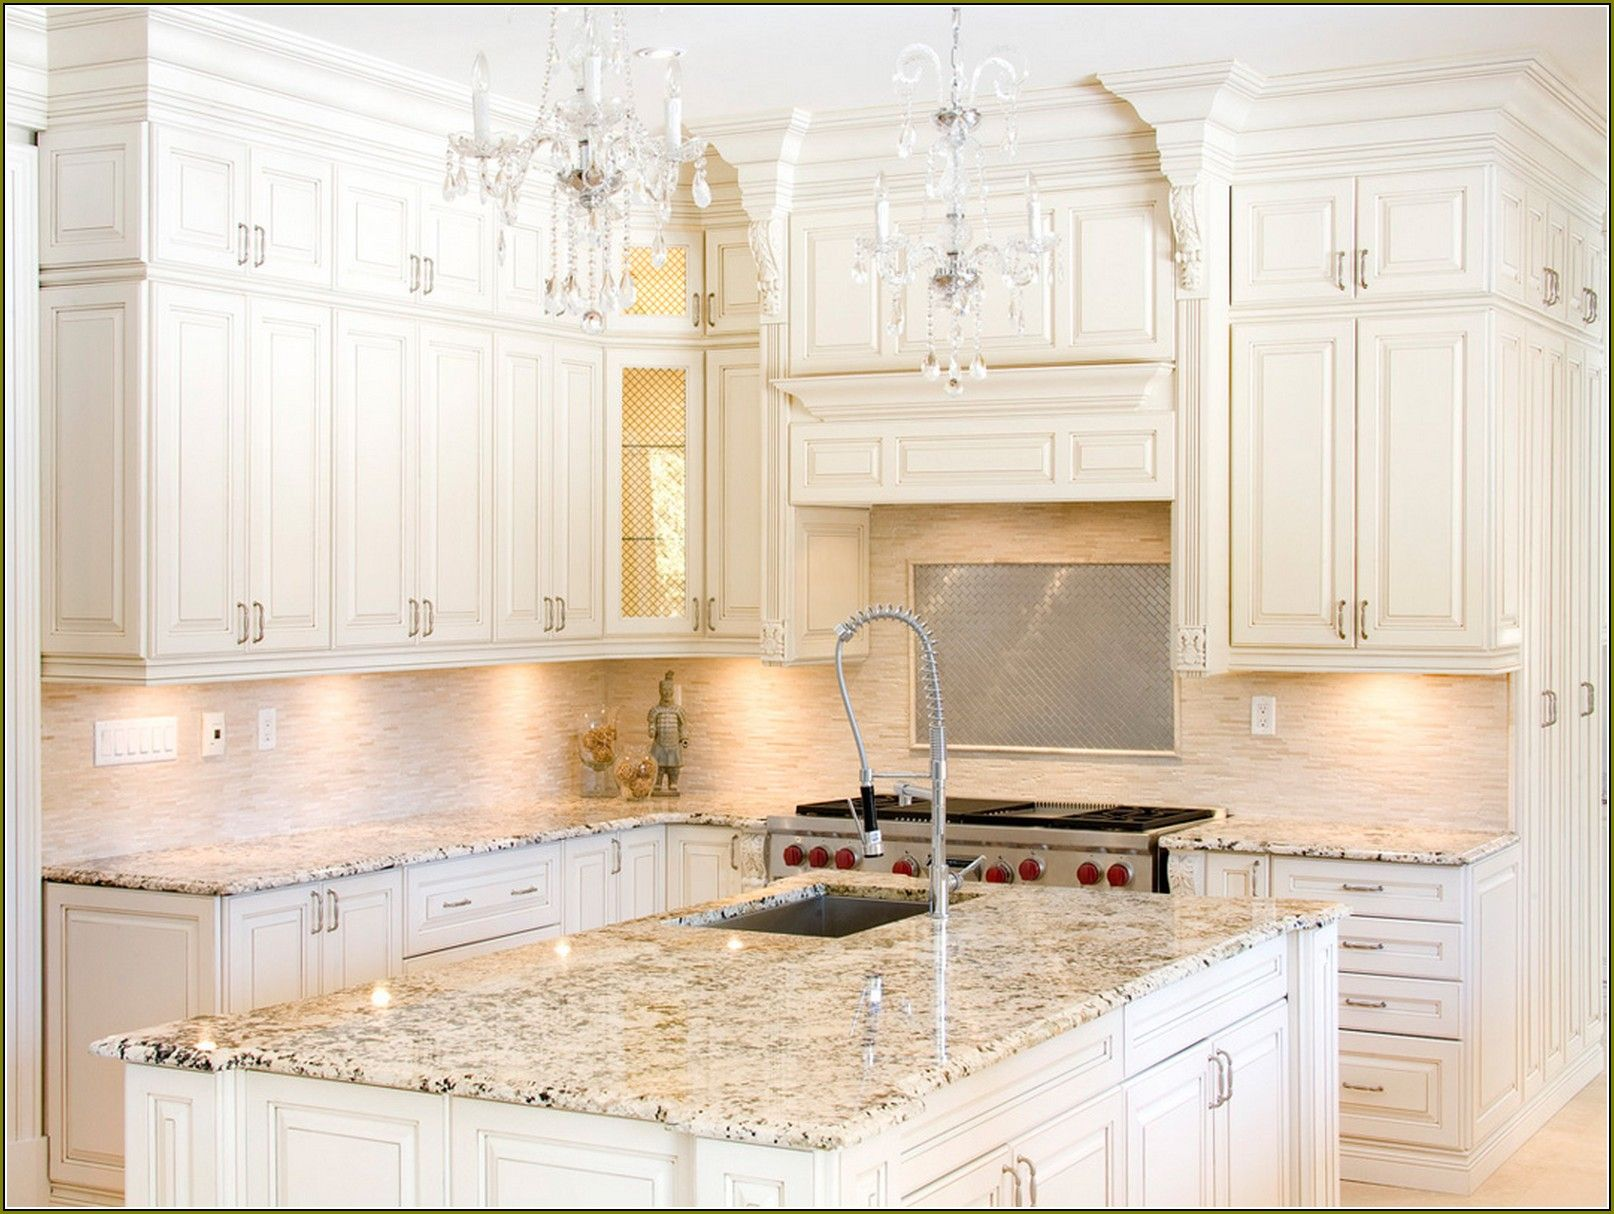 Off white kitchen cabinets with granite countertops White kitchen cabinets with granite countertops photos